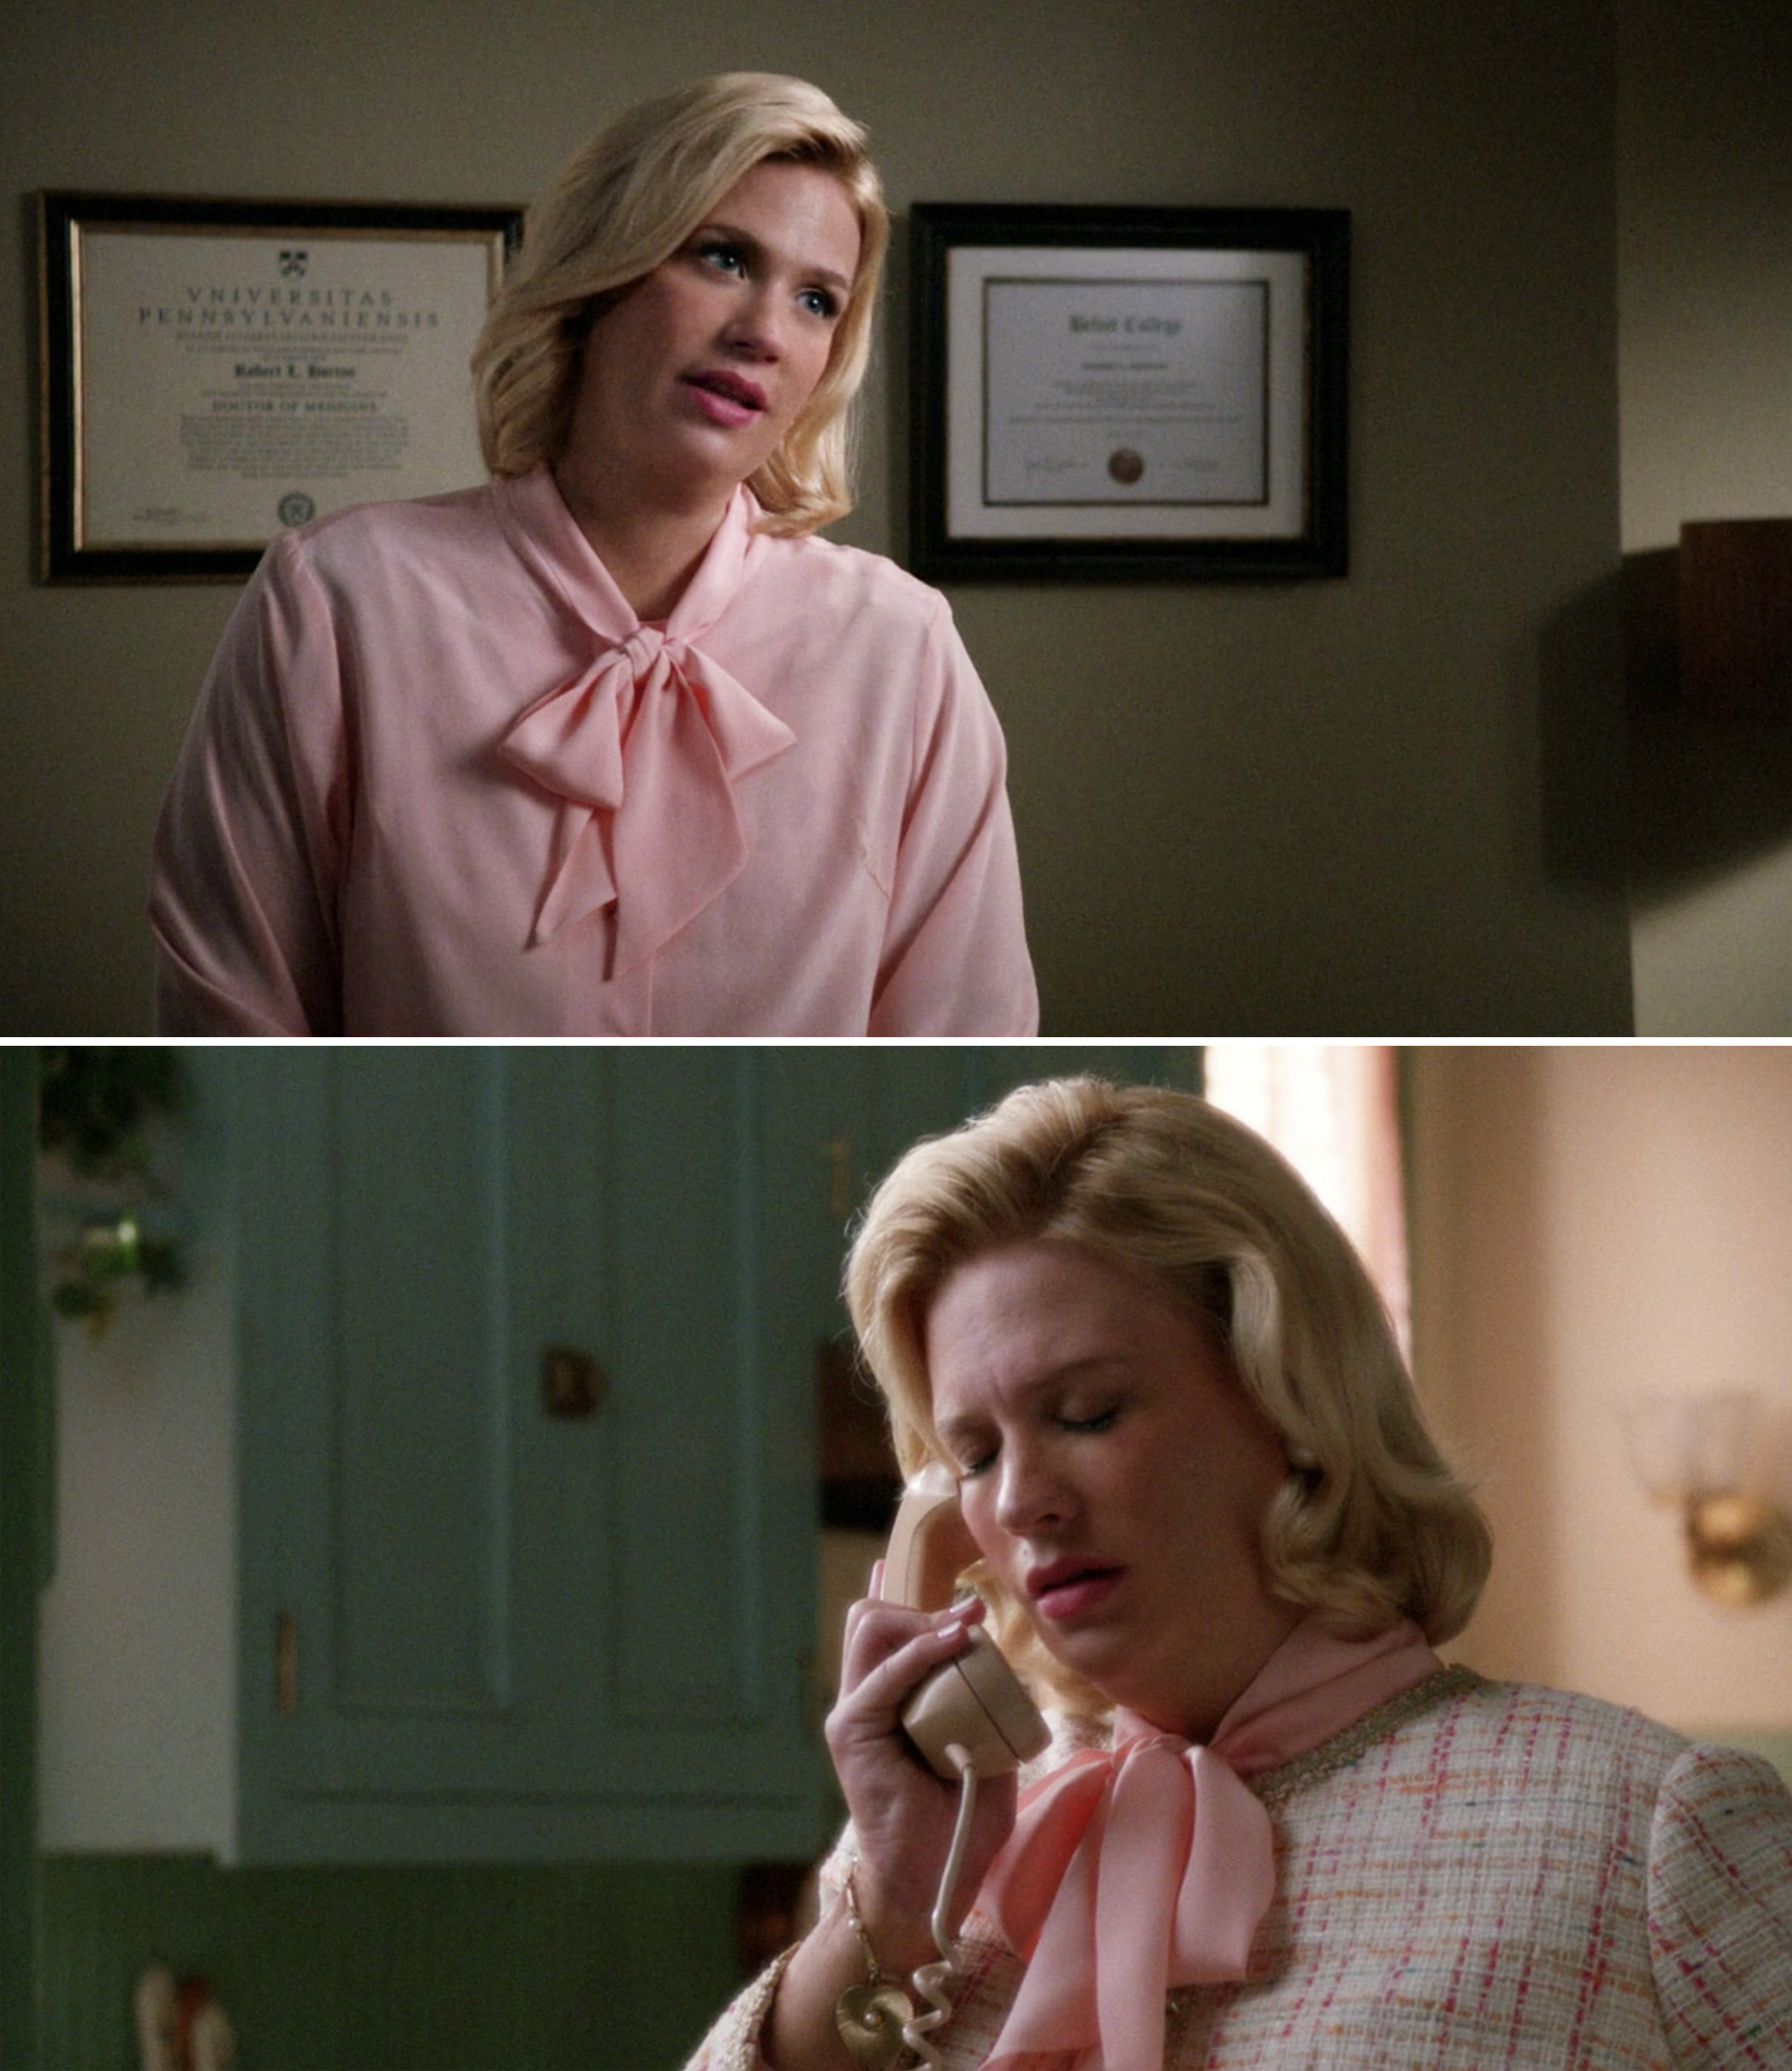 Betty at the doctor's office and Betty on the phone